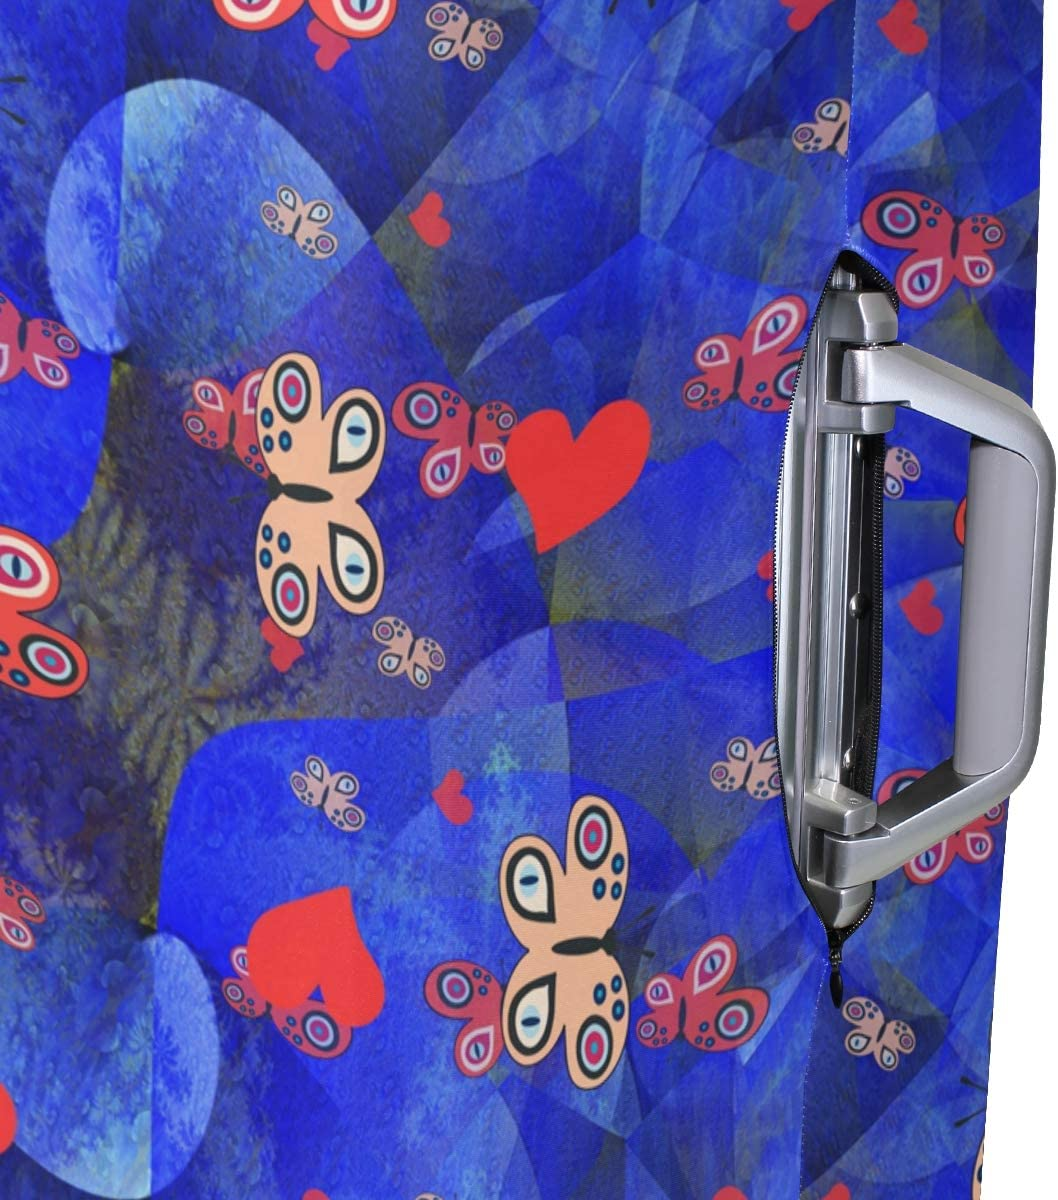 ALAZA Luggage Protector,Butterflies And Hearts Elastic Travel Luggage Suitcase Cover,Washable and Durable Anti-Scratch Case Protective Cover for 18-32 Inches